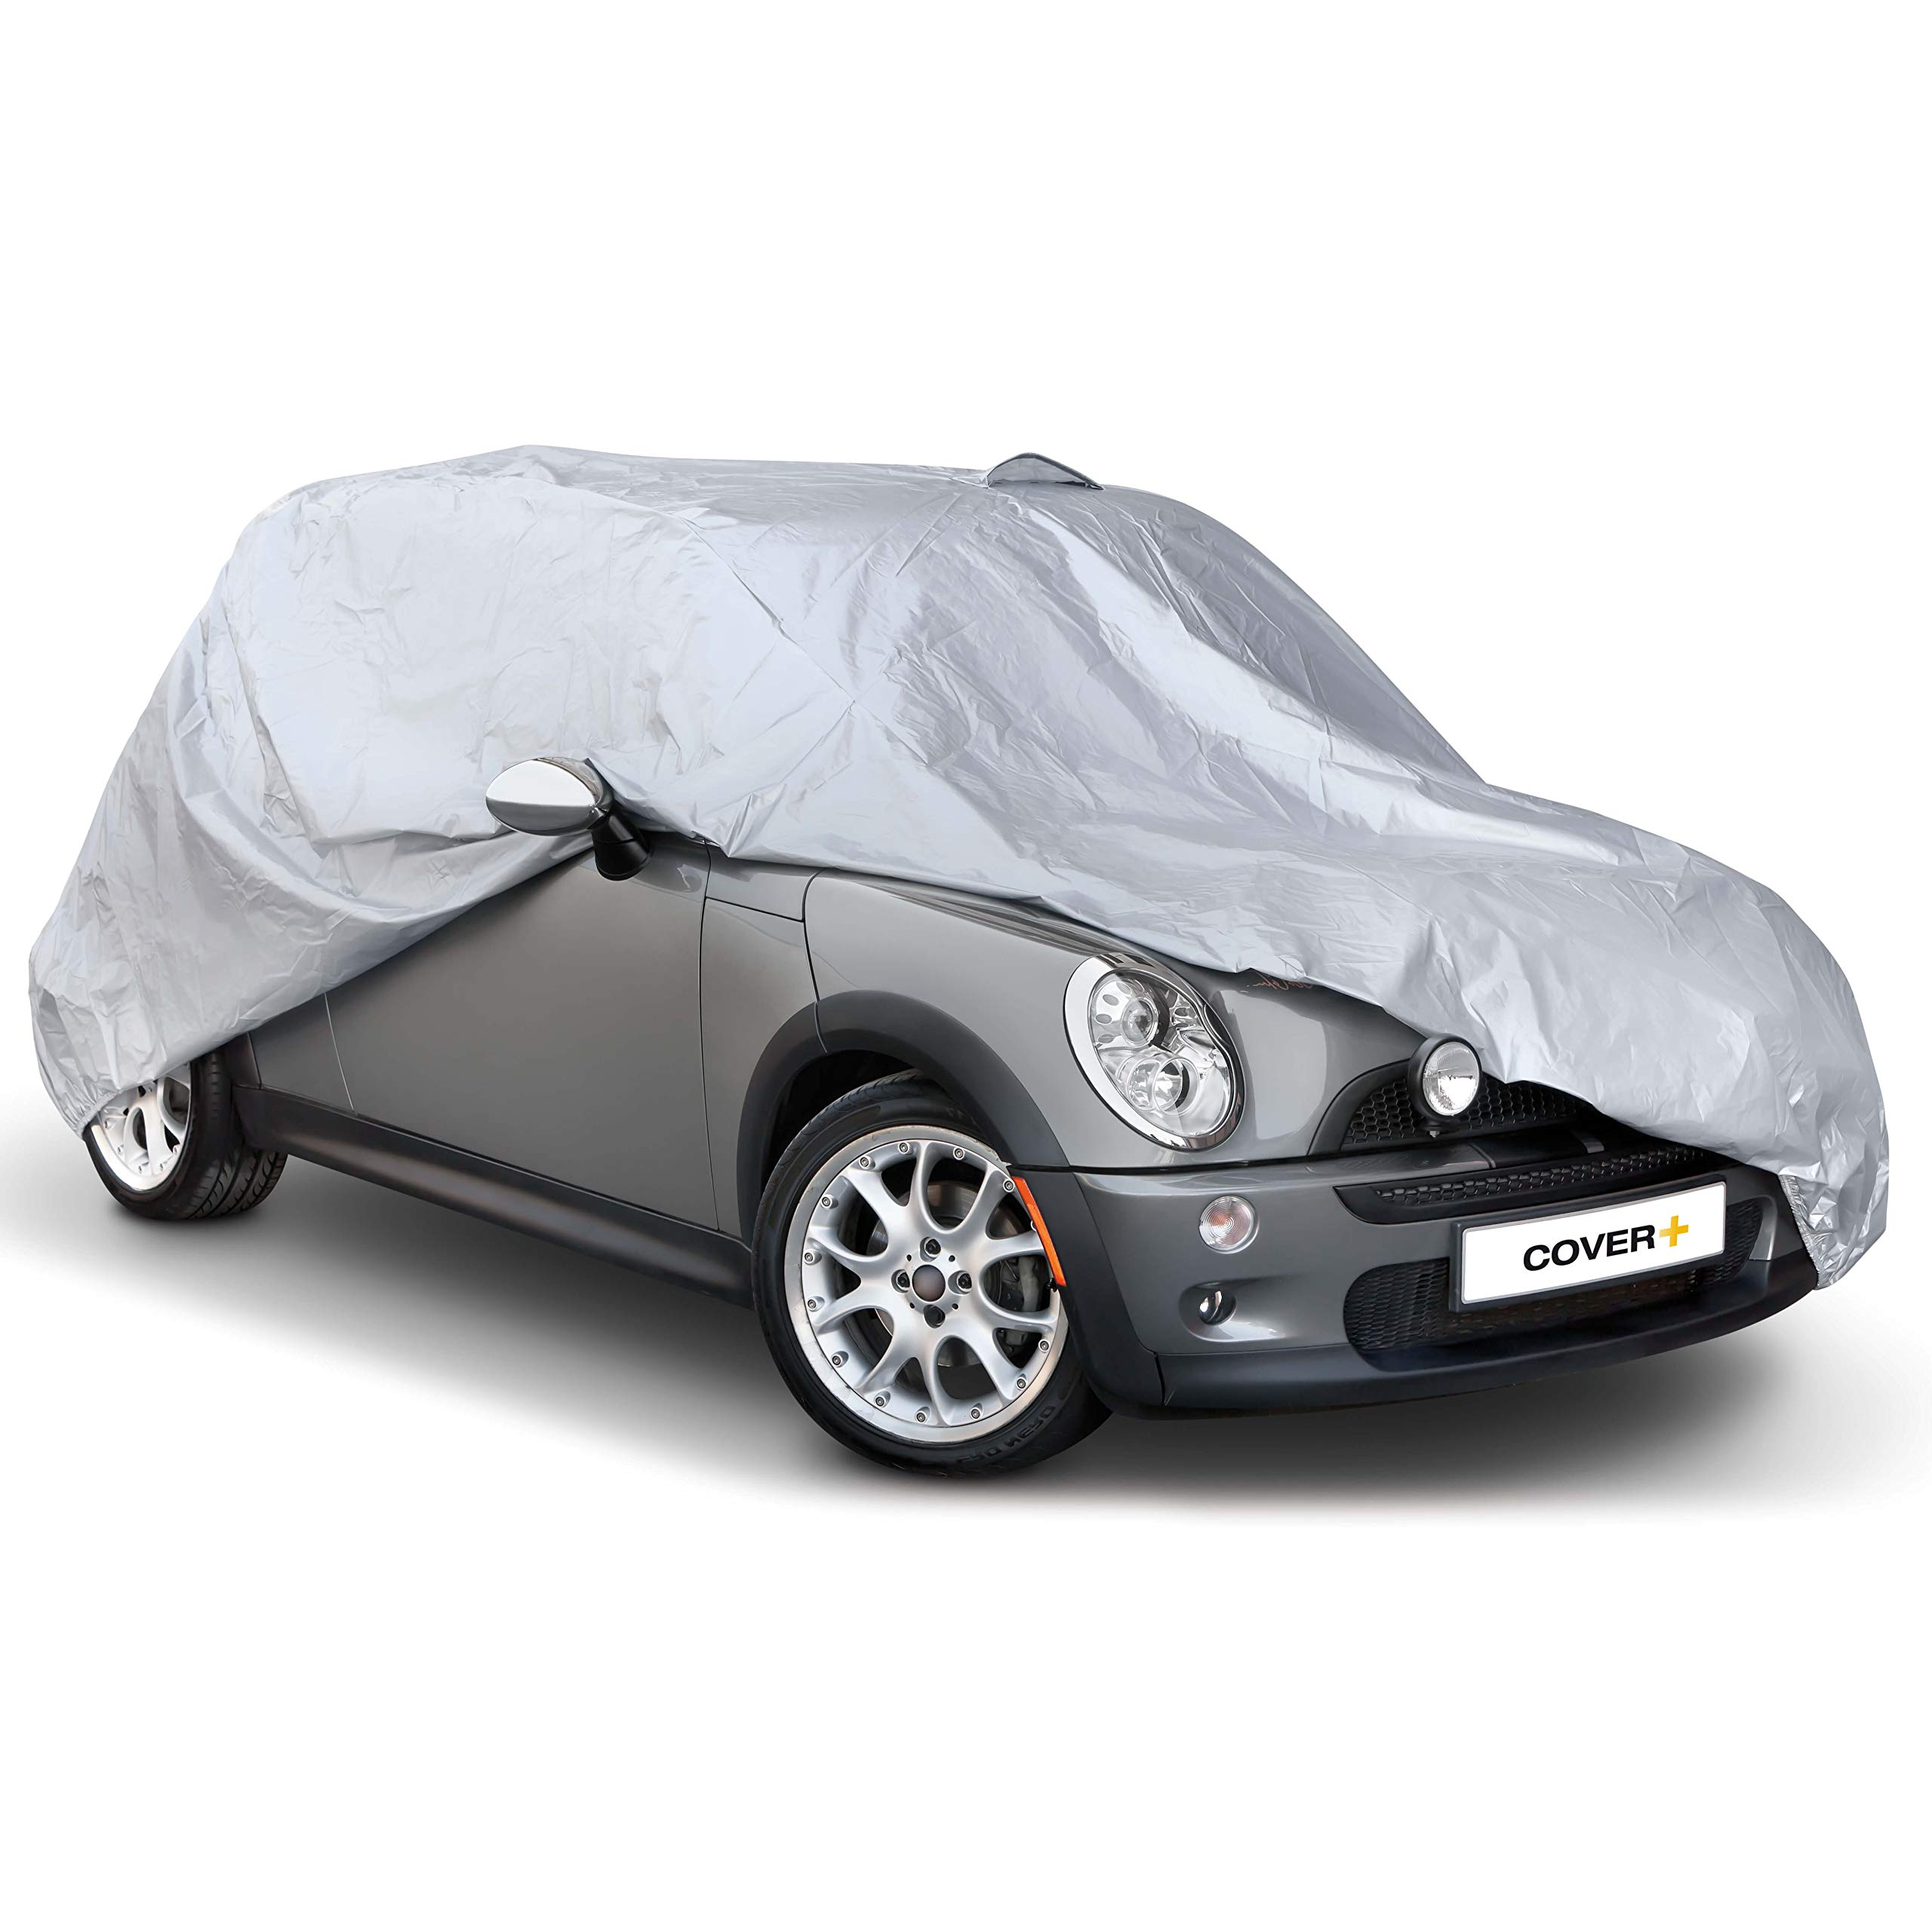 SUMEX All Year Protection Indoor /& Outdoor Full Breathable Car Cover to fit Mini Cooper